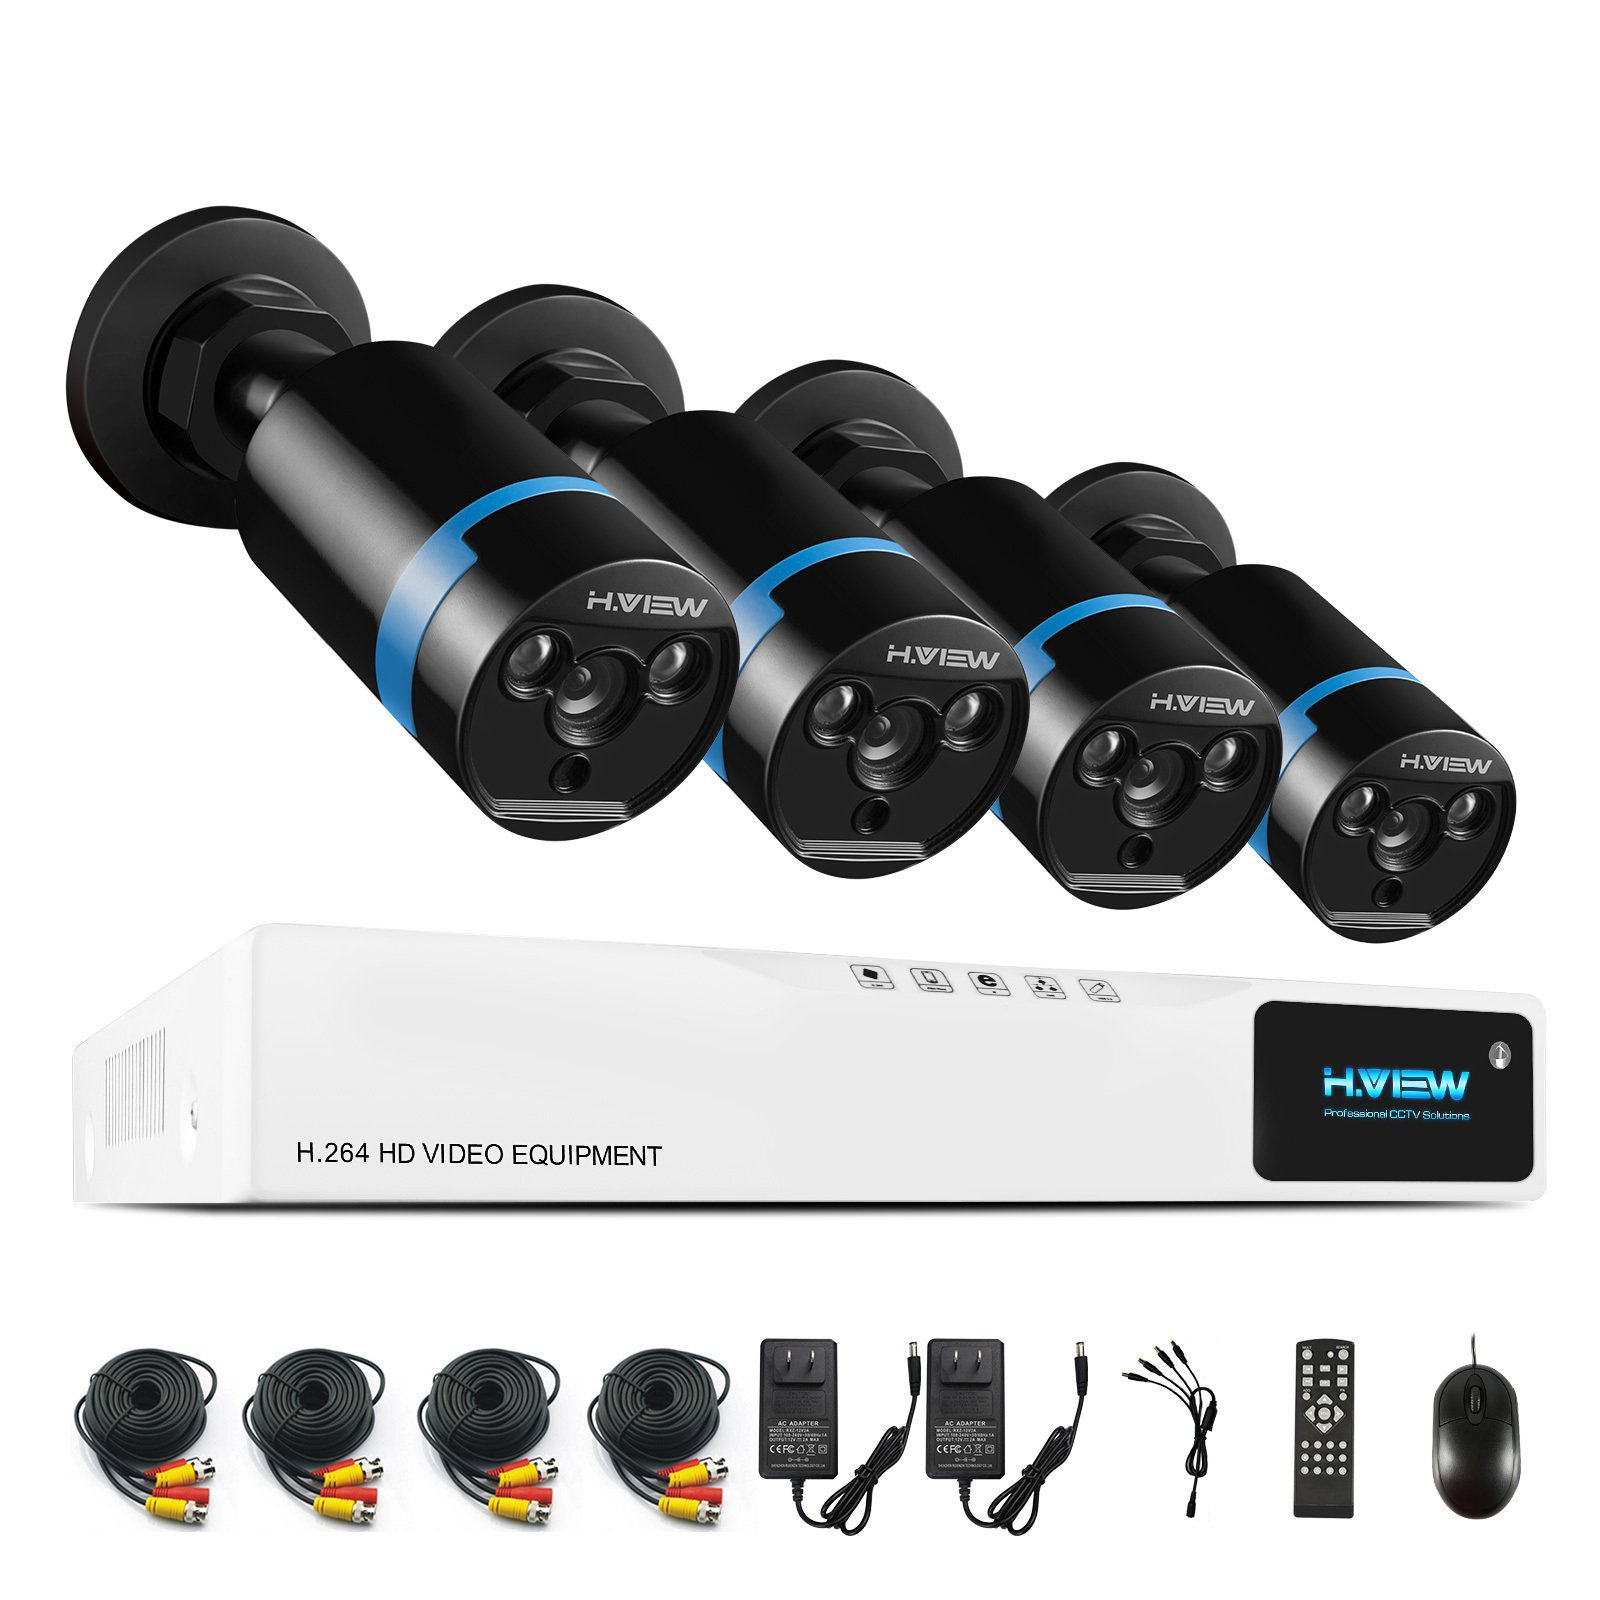 H.View 1080P CCTV System Full HD Video Security System, 4 Channel CCTV DVR Recorder, 1080P (2.0MP) Outdoor Bullet Surveillance Cameras,Smart Recording and Palyback (No Hard Drive Installed)